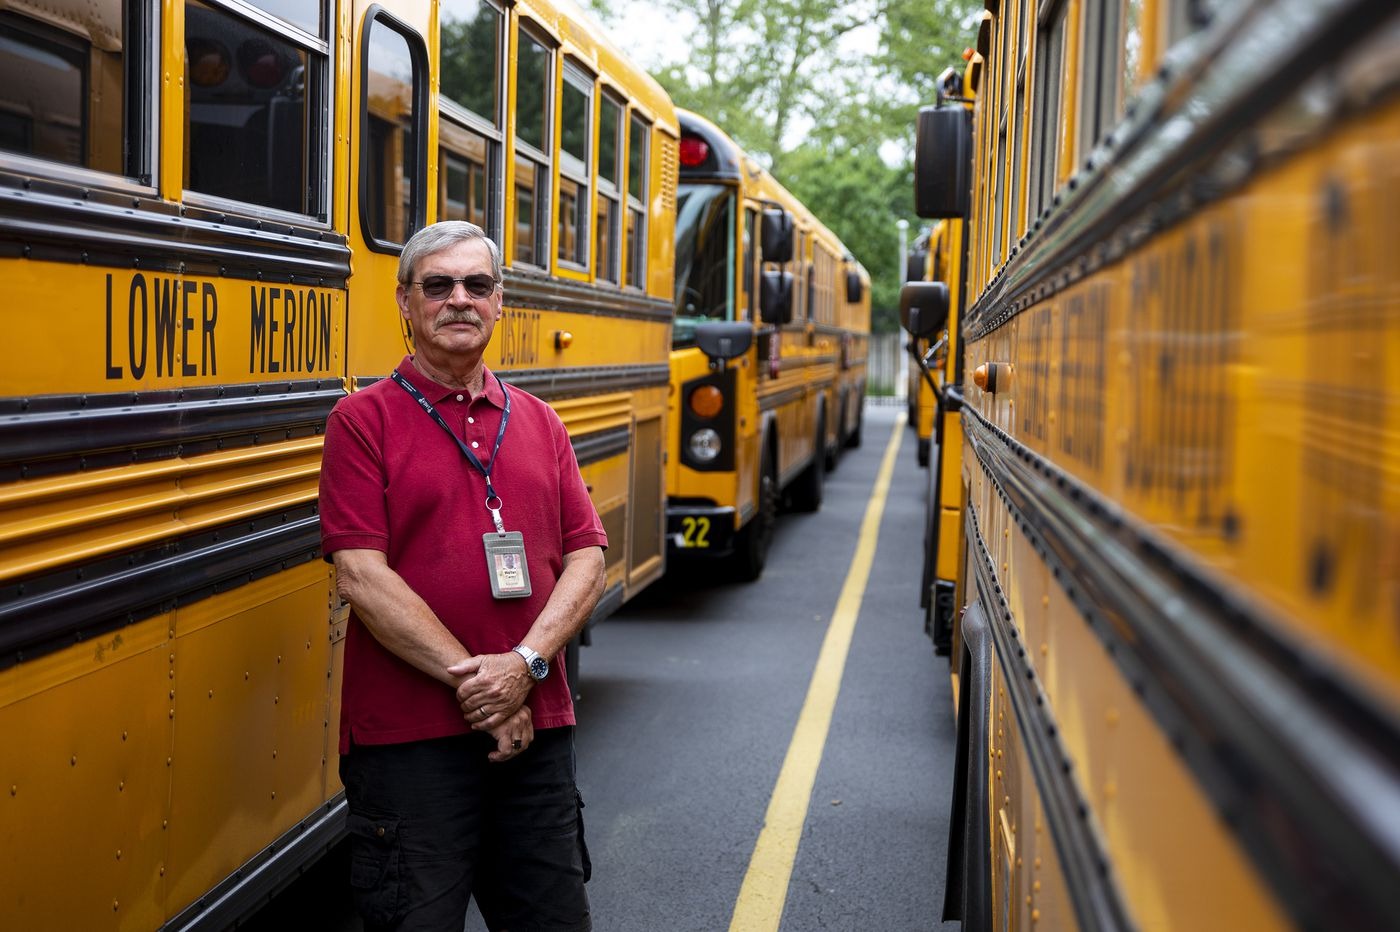 Pandemic Robs Retiring Lower Merion Bus Driver of Chance to Say Proper Goodbye